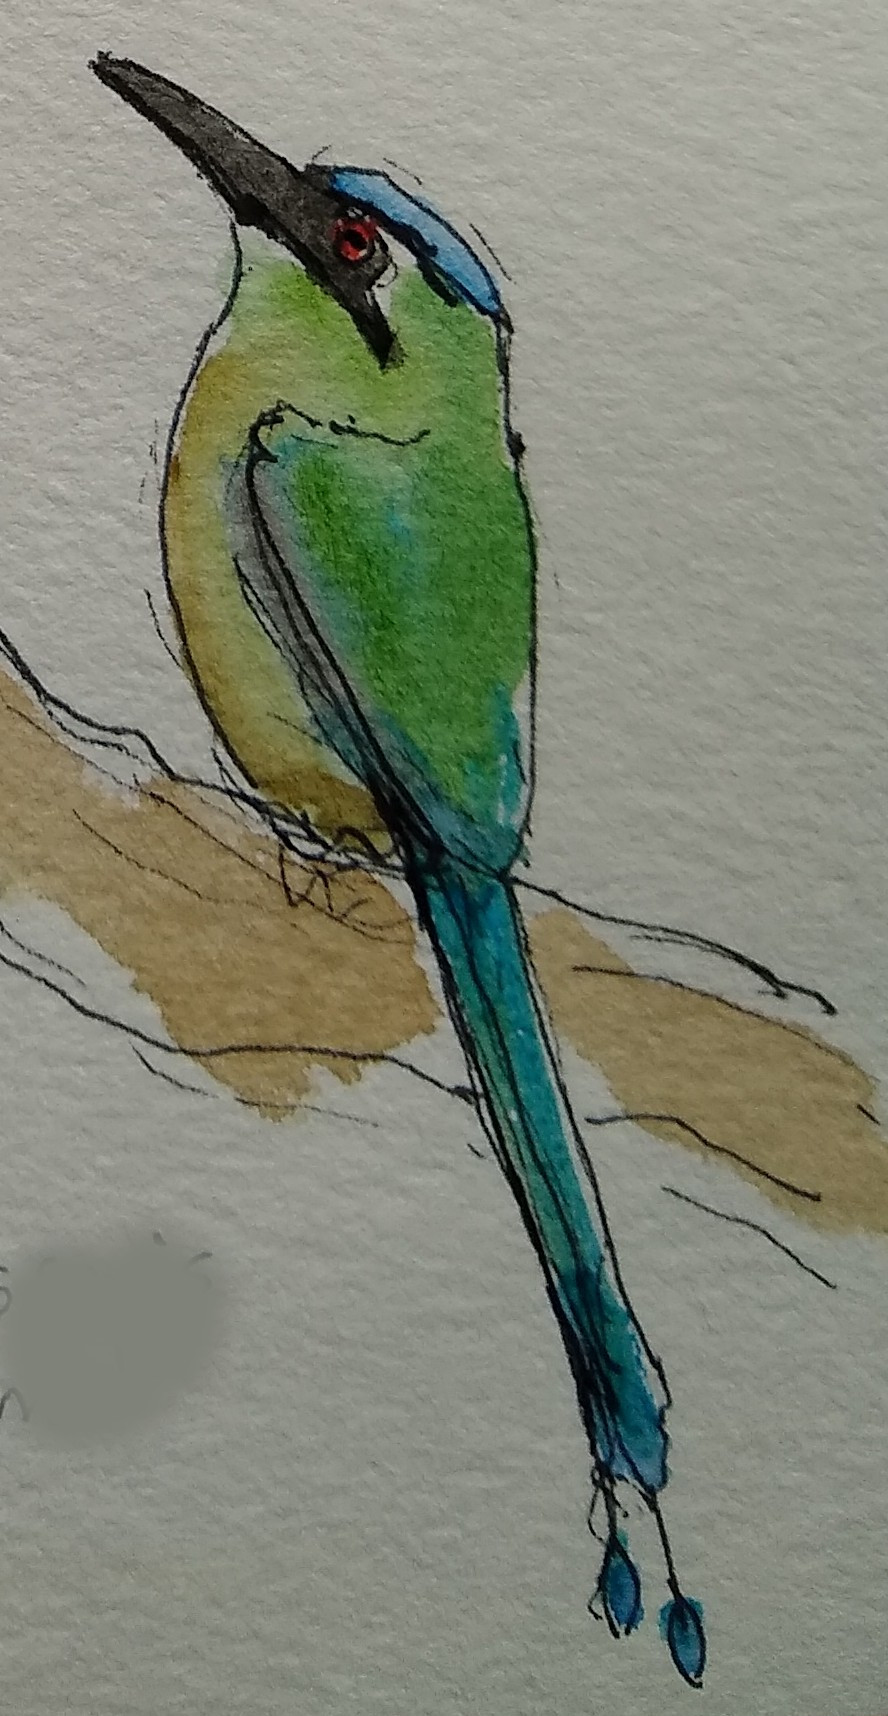 Motmot sketch - Costa RIca